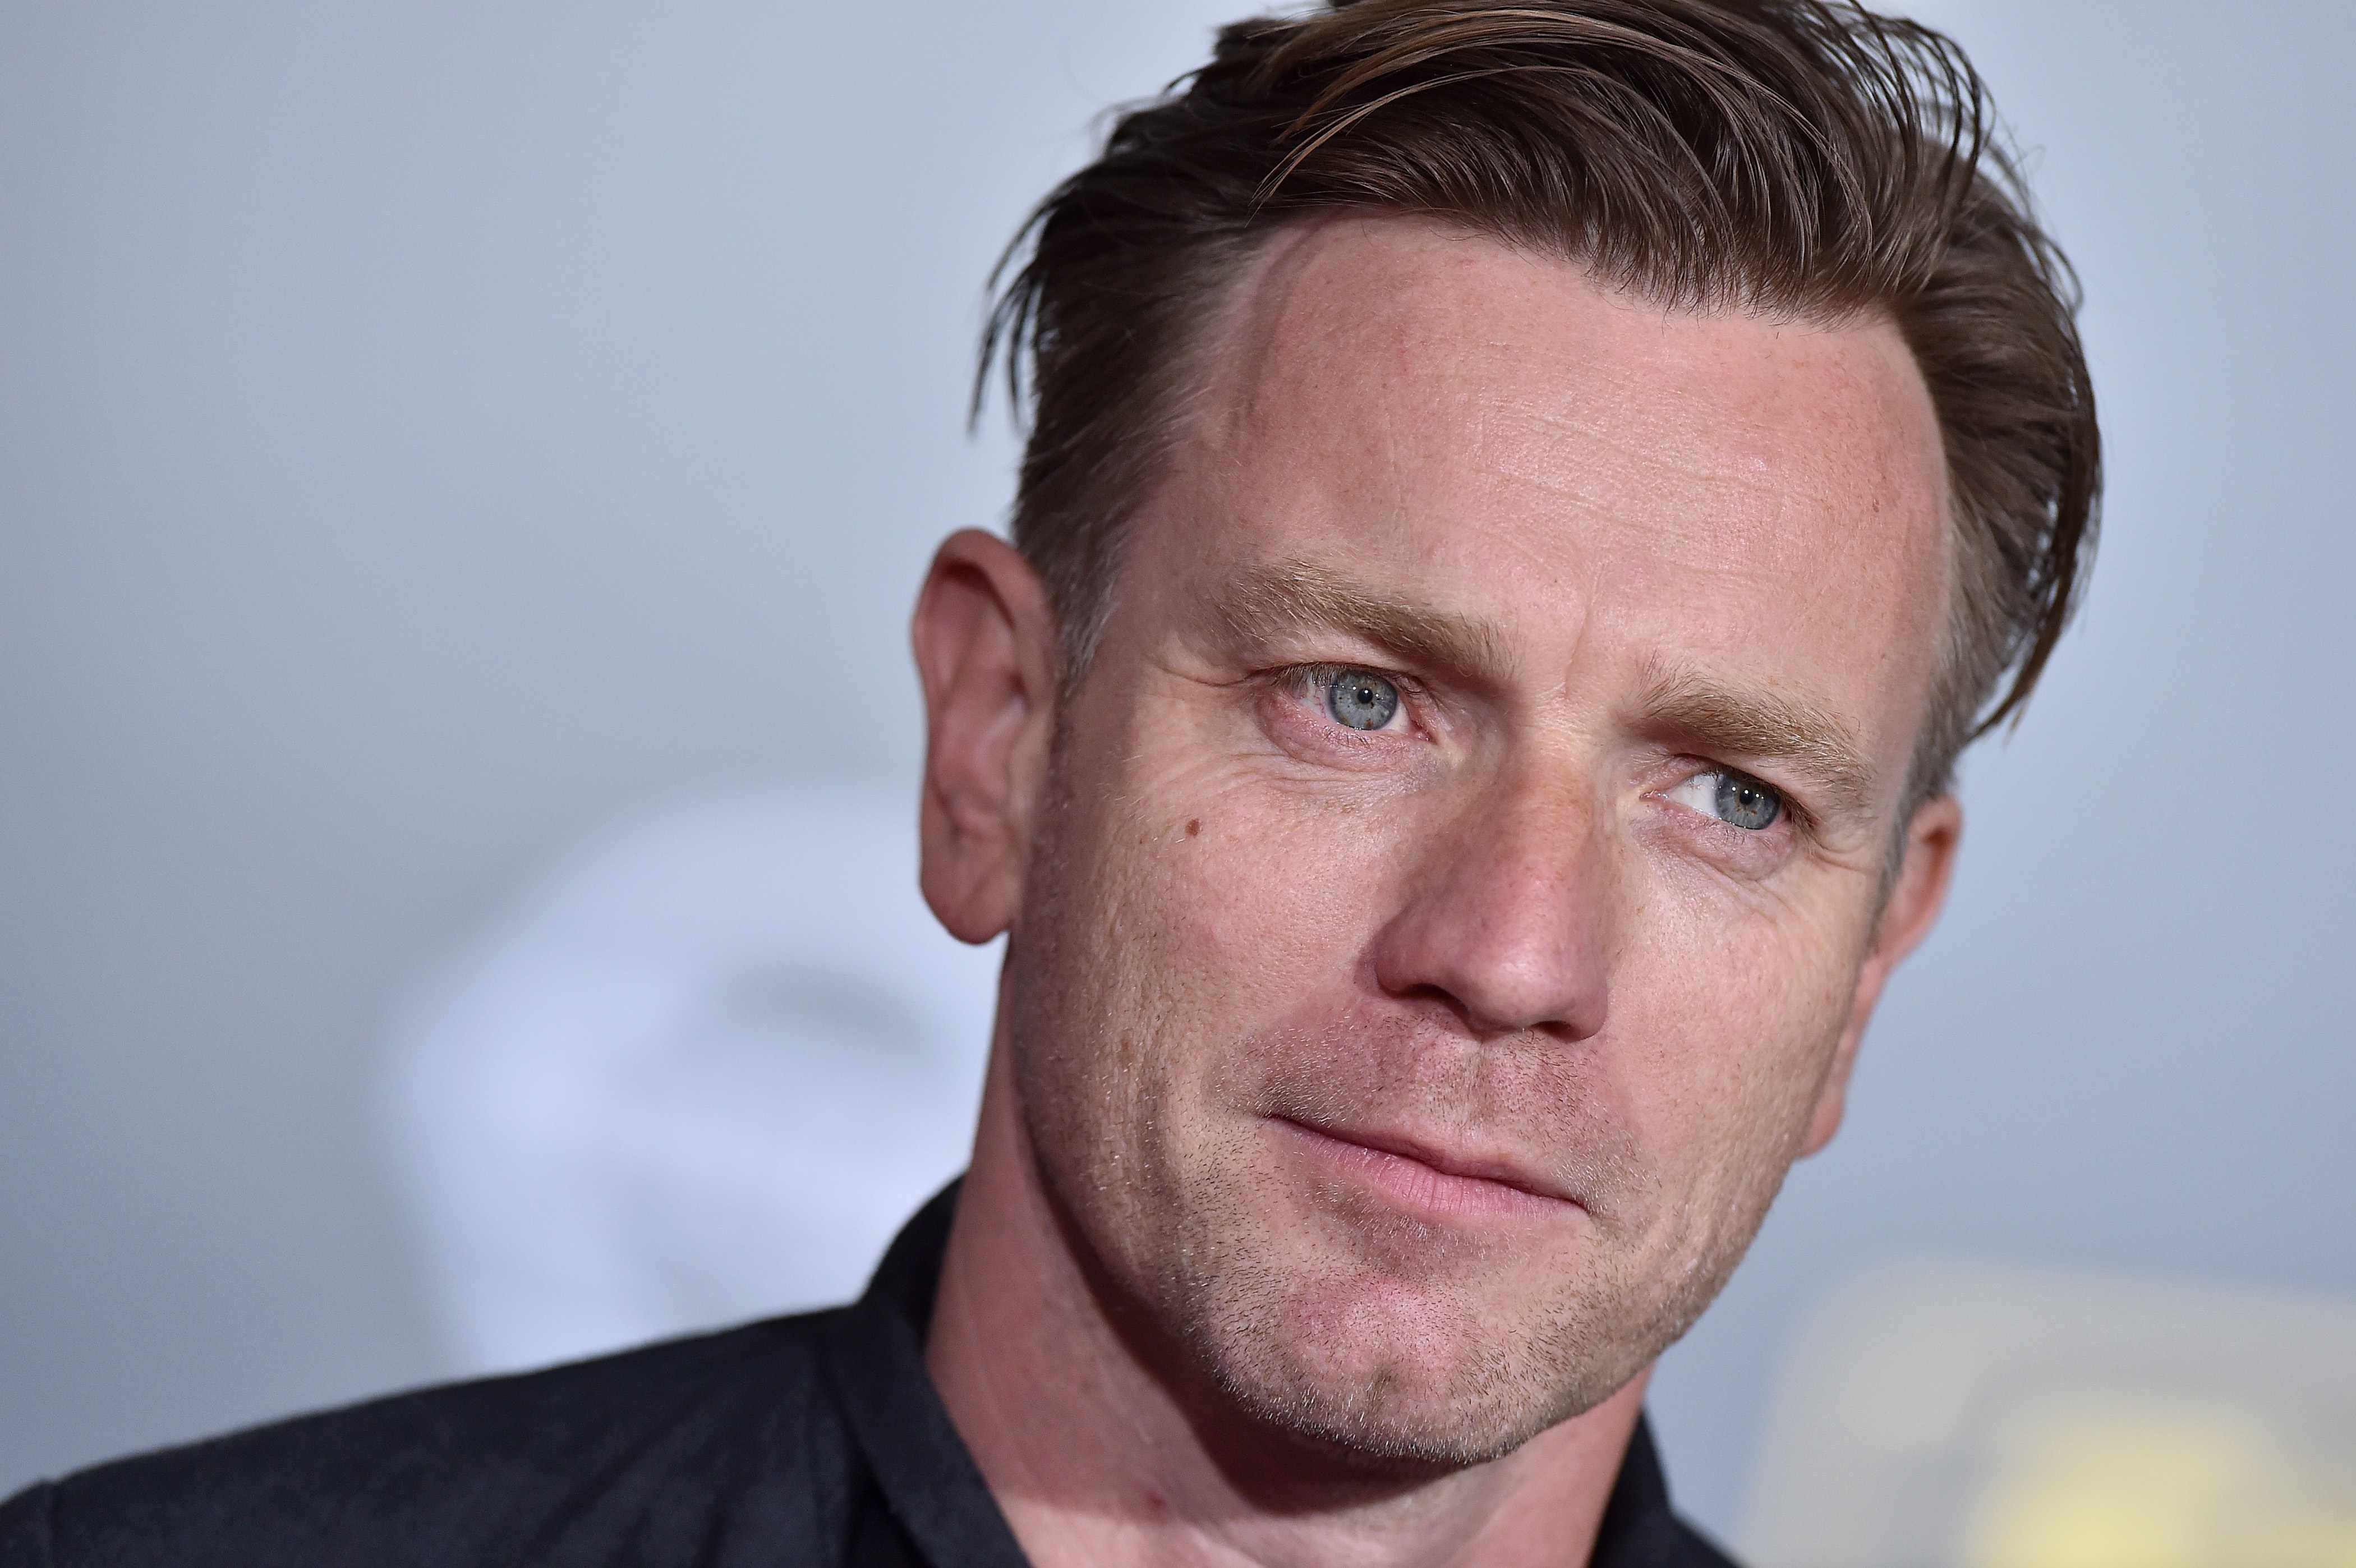 HOLLYWOOD, CA - MAY 10:  Actor Ewan McGregor arrives at the premiere of Disney Pictures and Lucasfilm's 'Solo: A Star Wars Story' at the El Capitan Theatre on May 10, 2018 in Hollywood, California.  (Photo by Axelle/Bauer-Griffin/FilmMagic)  Getty, TL